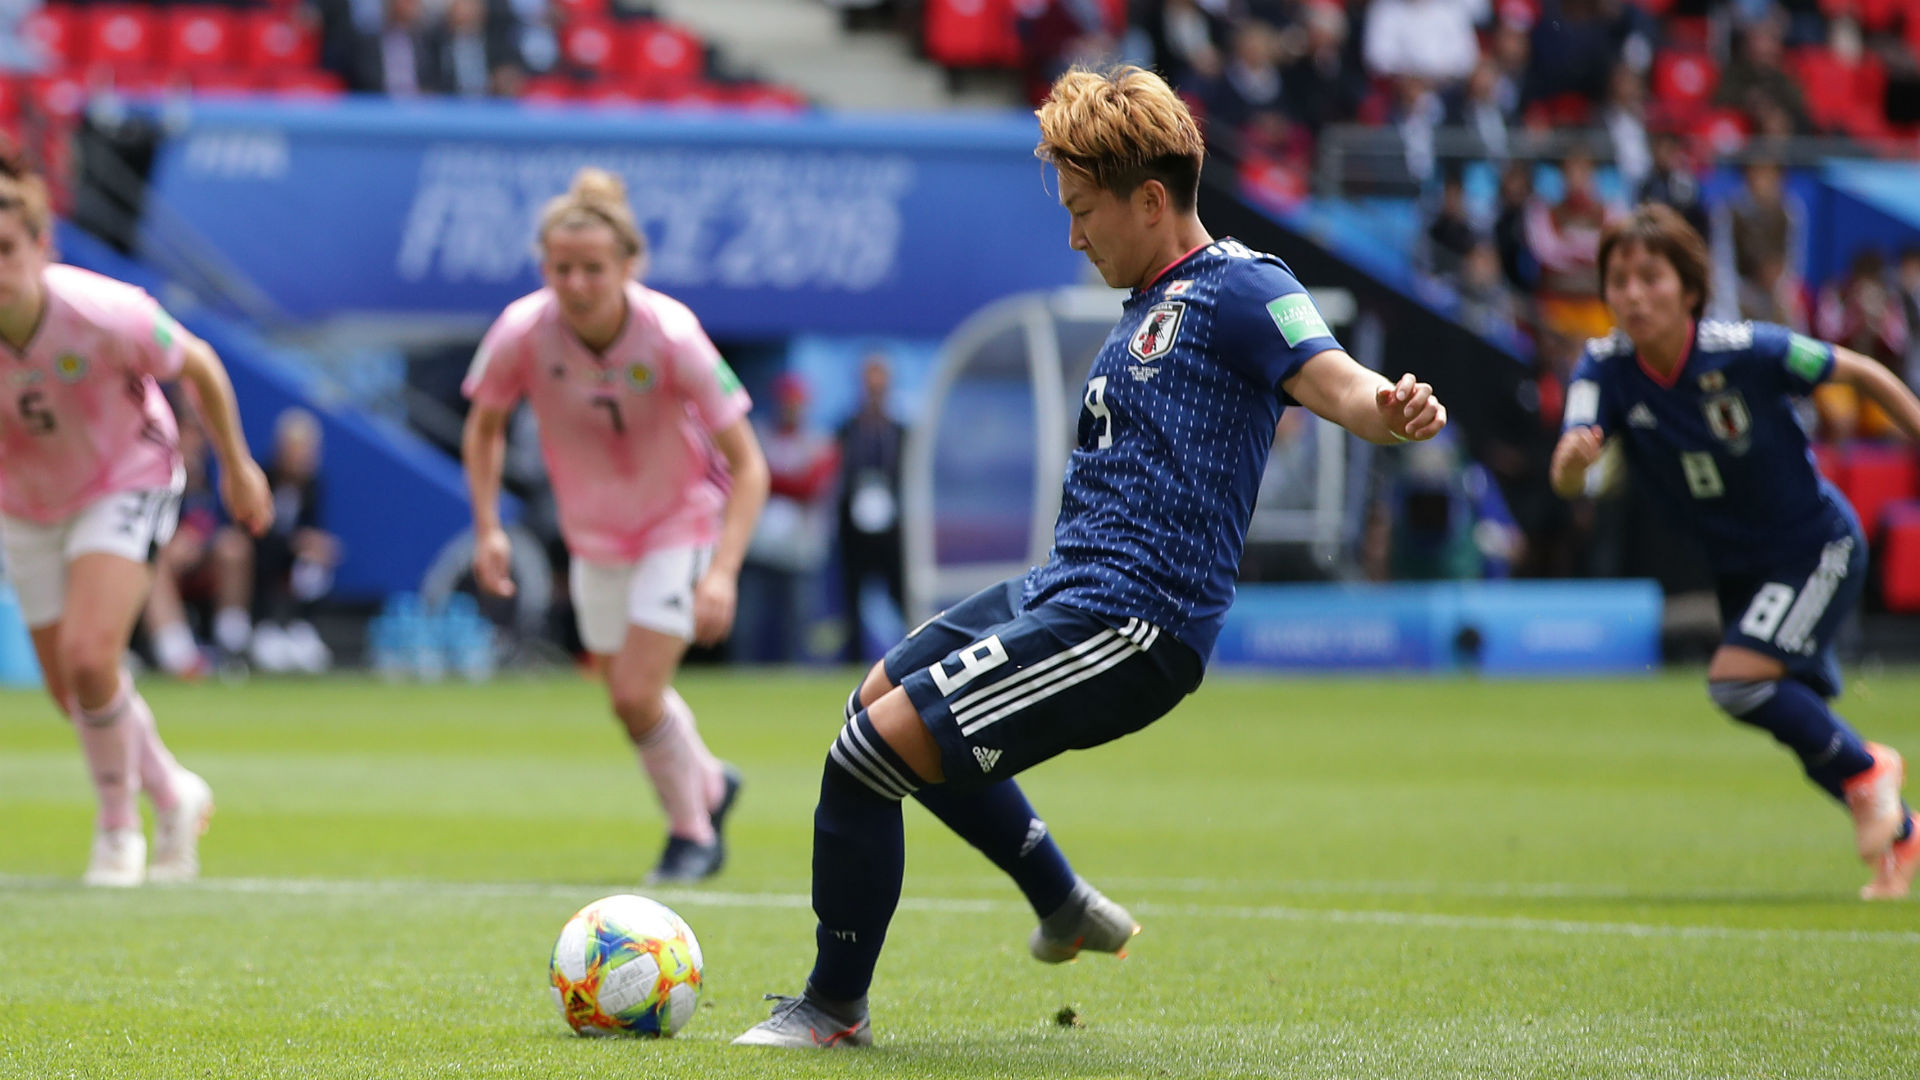 Women's World Cup 2019: Japan bounces back with 2-1 win over Scotland